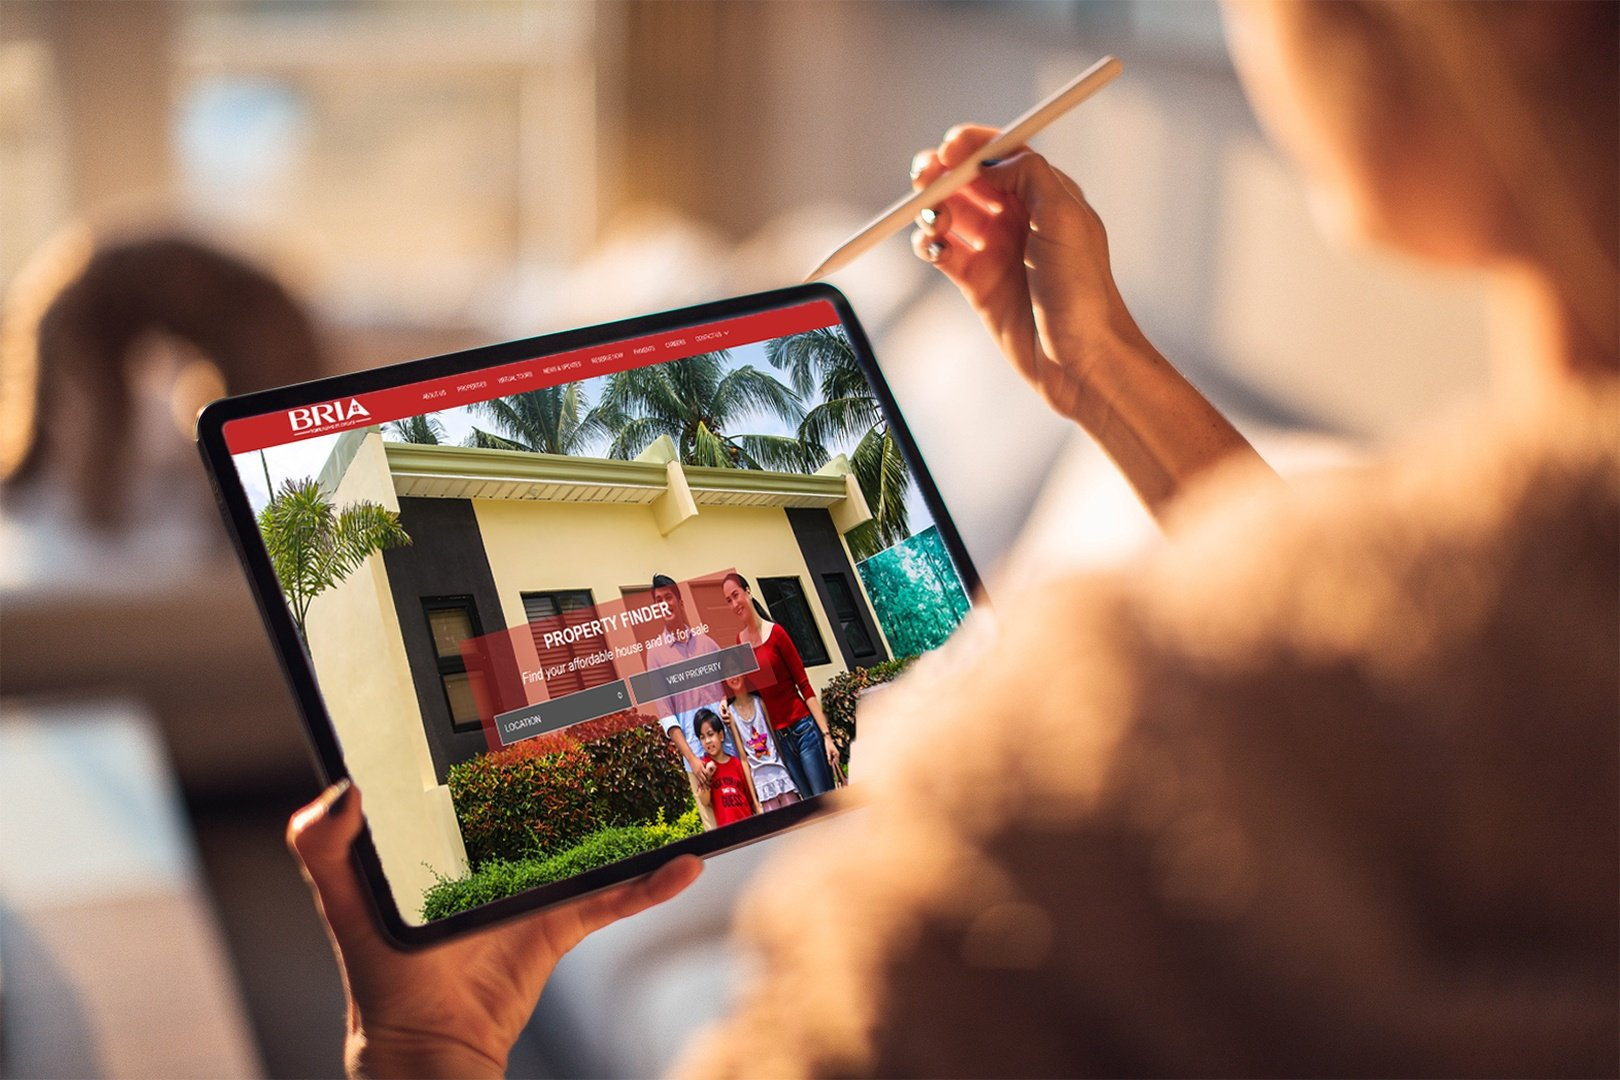 The process of buying and owning a BRIA Home can now be completed entirely online.